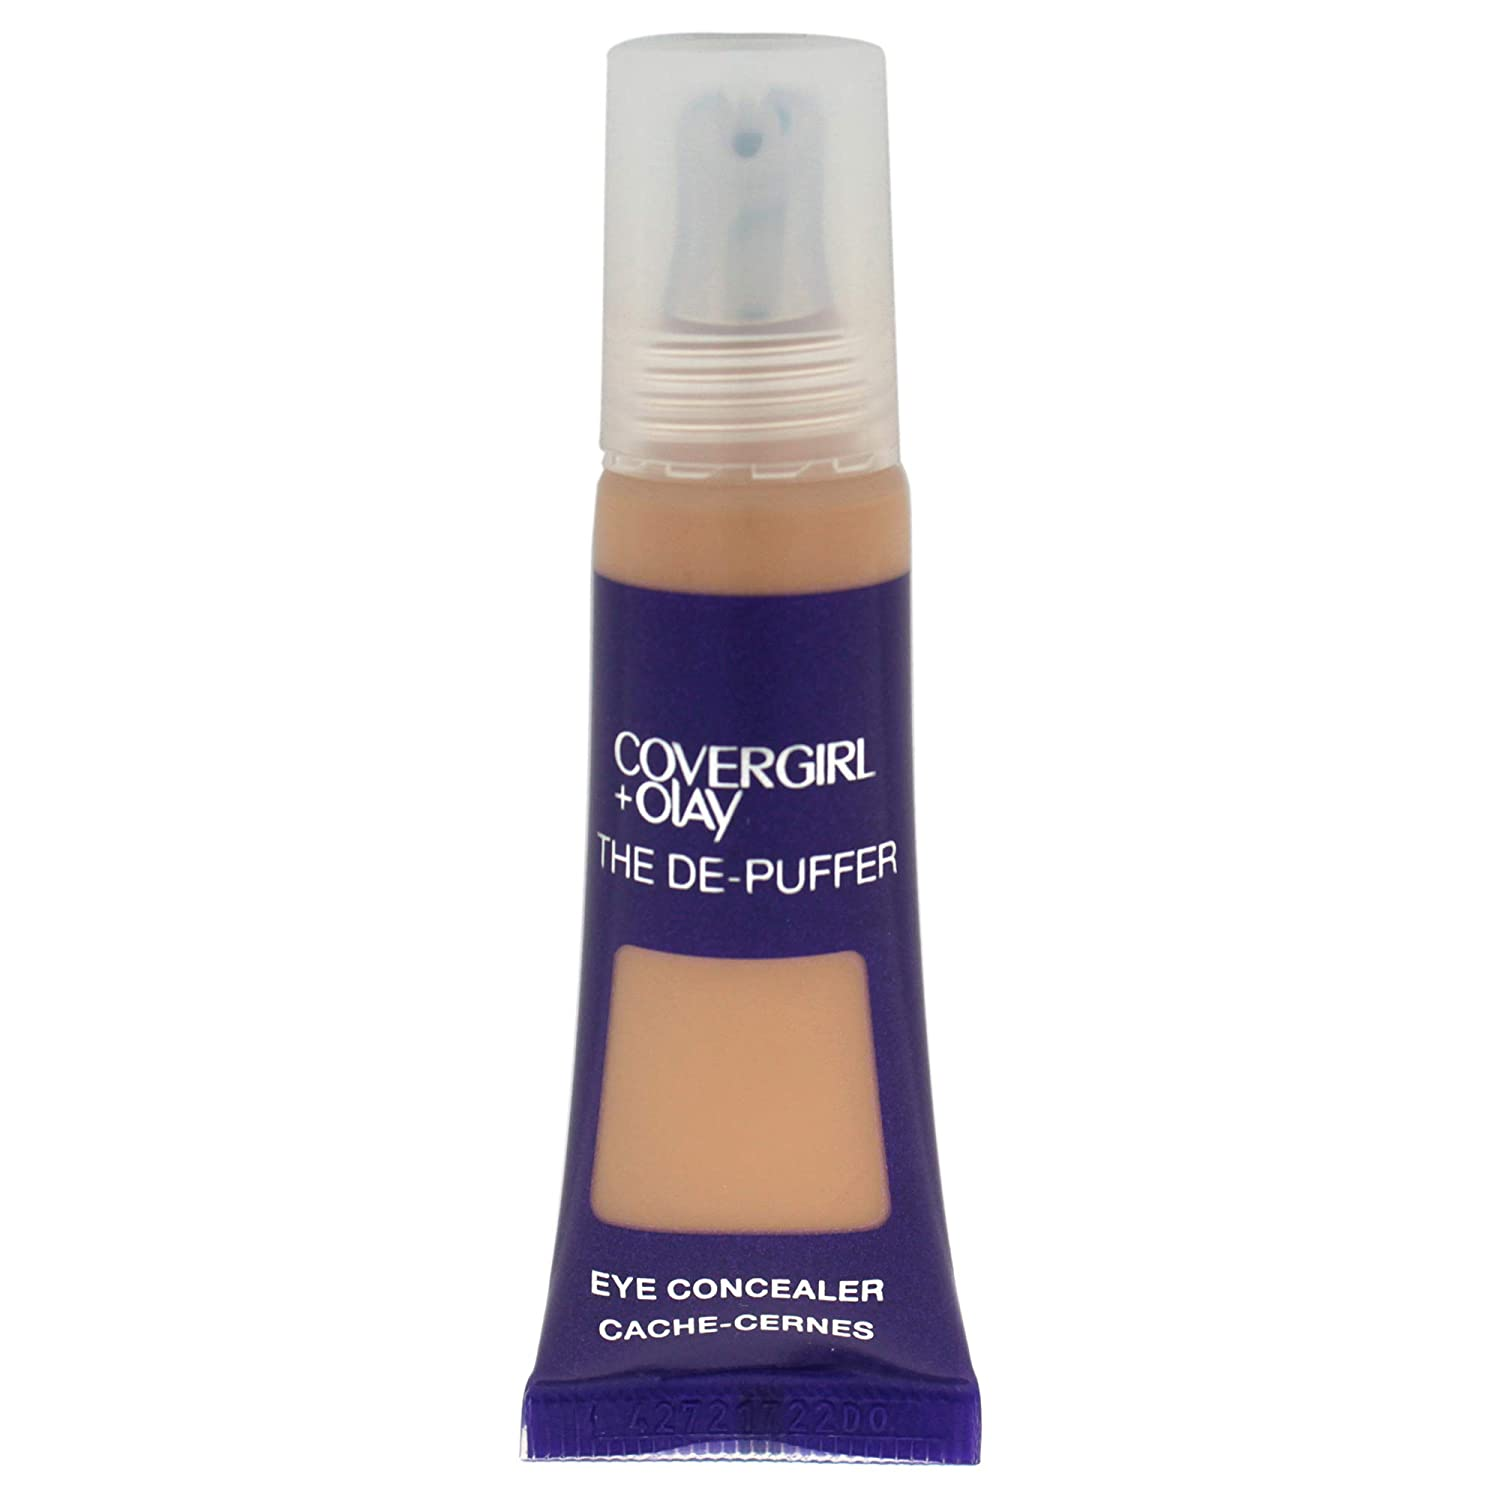 e1b4d29832e Amazon.com: COVERGIRL + Olay The Depuffer Light 330, .3 oz, Old Version  (packaging may vary): Beauty